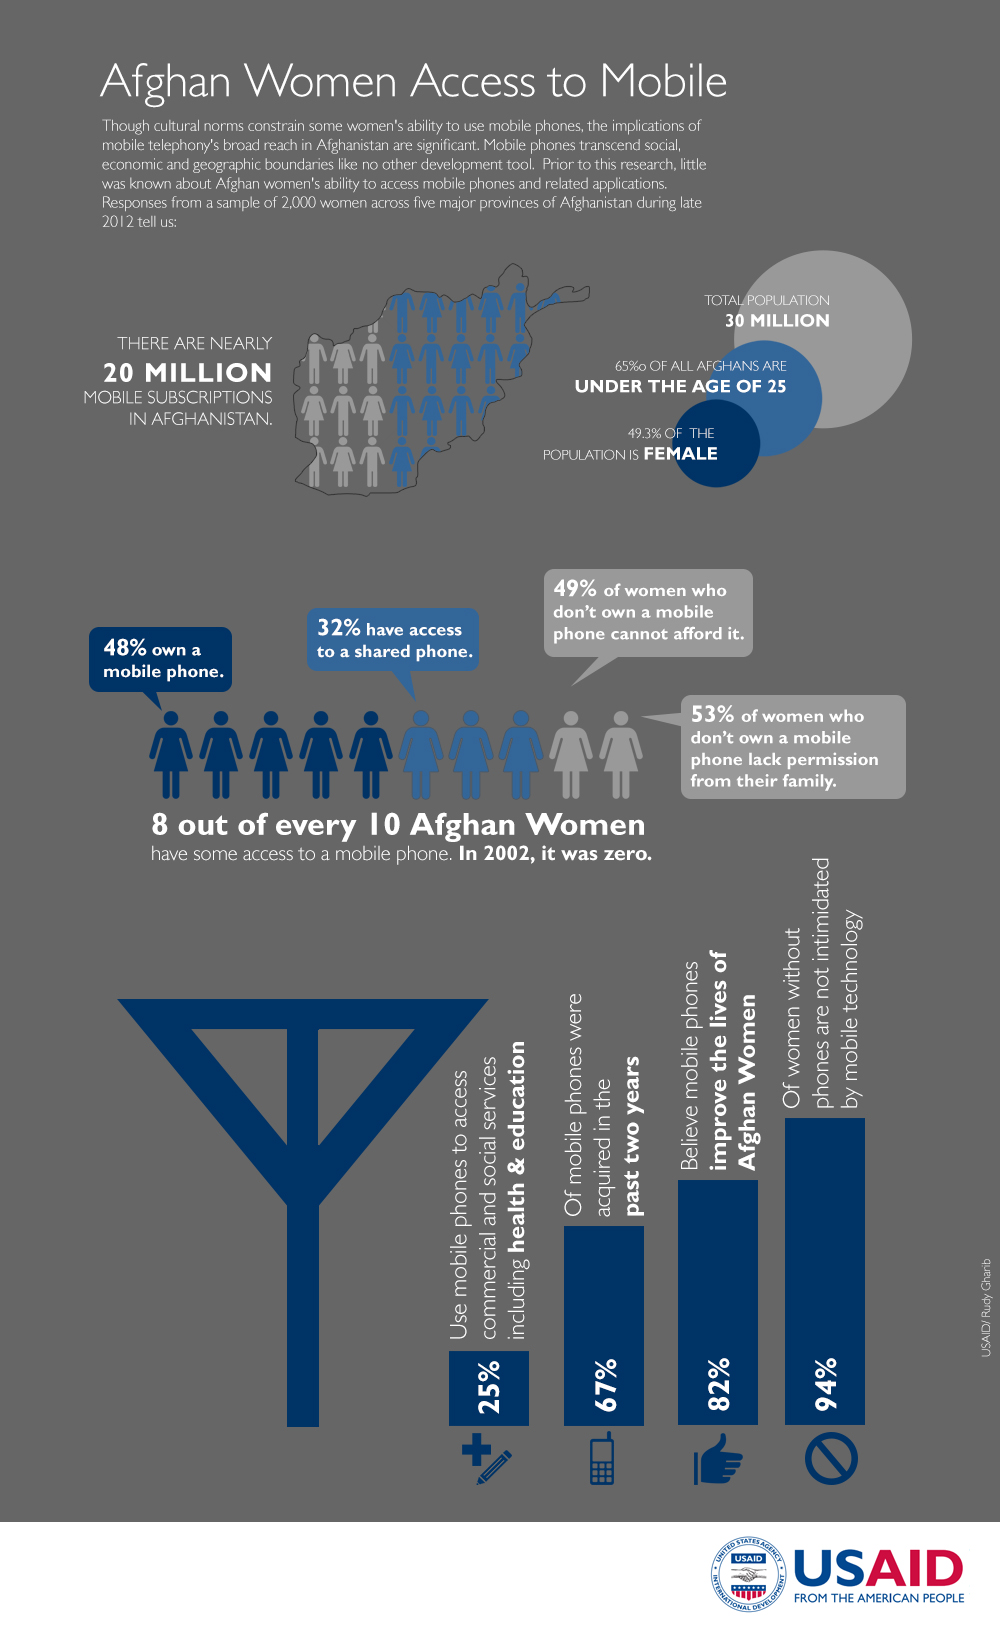 Infographic: Afghan Women's Access to Mobile